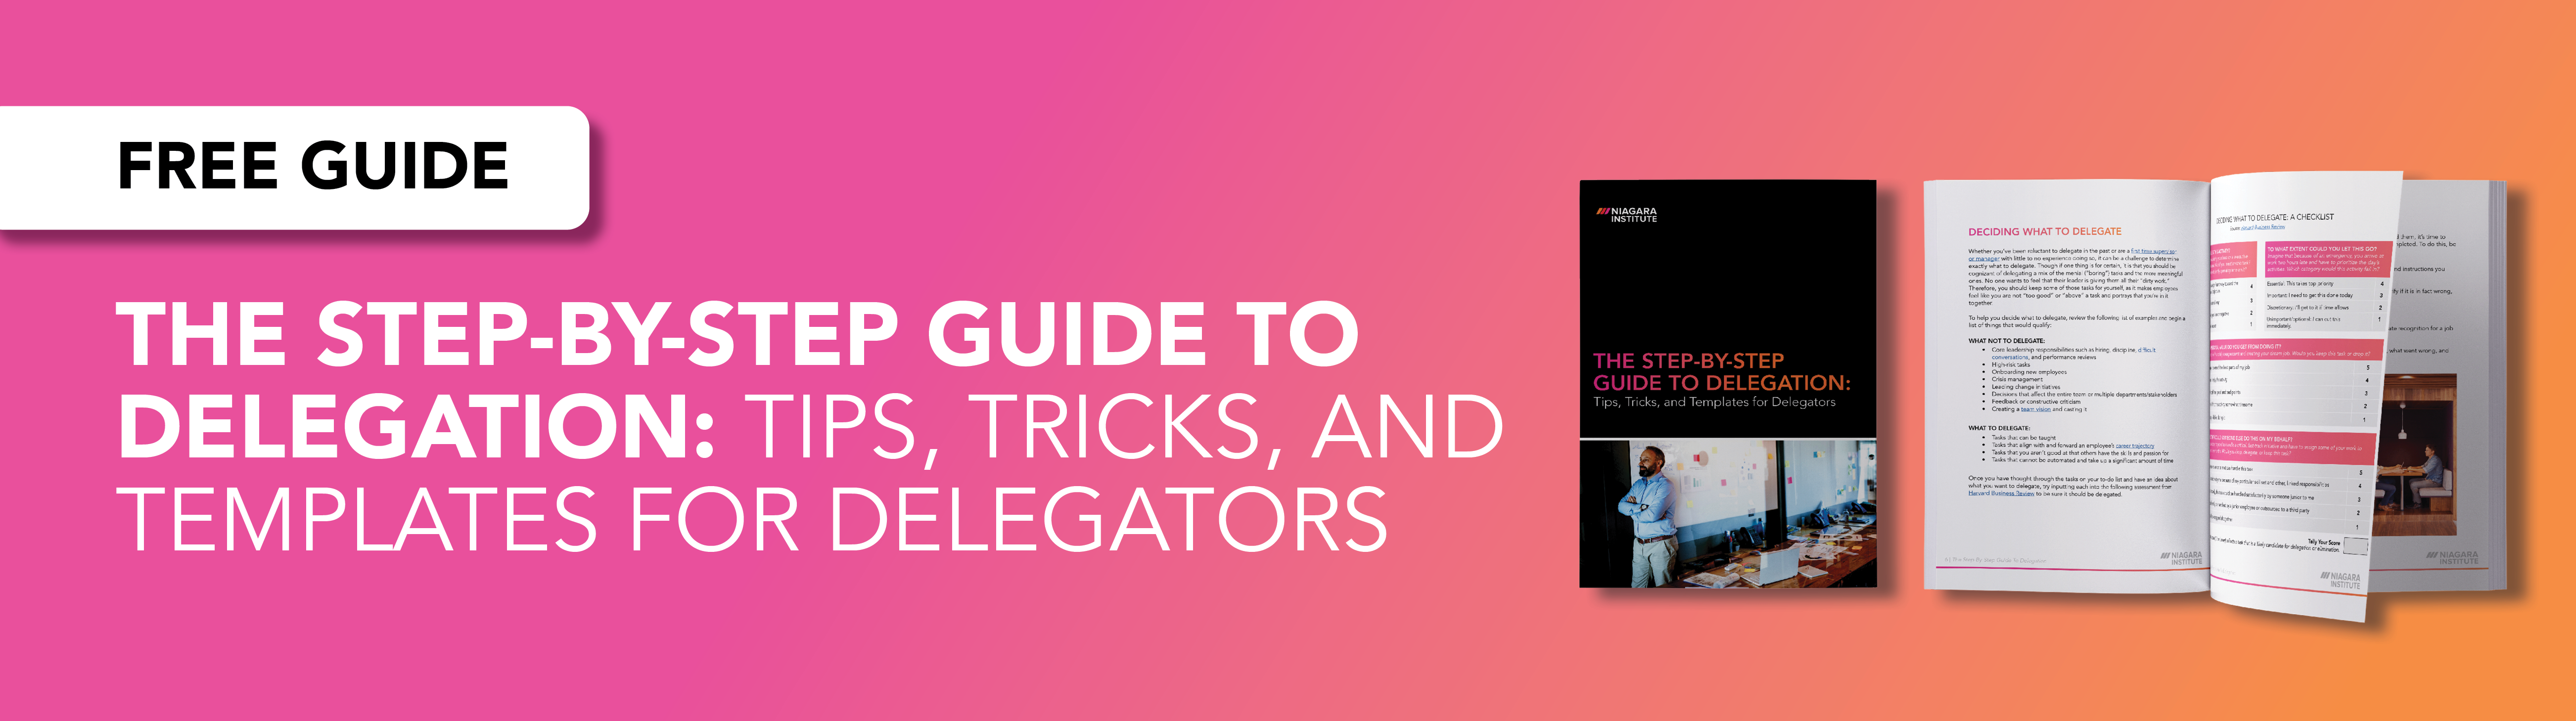 The Guide to Delegation for Leaders